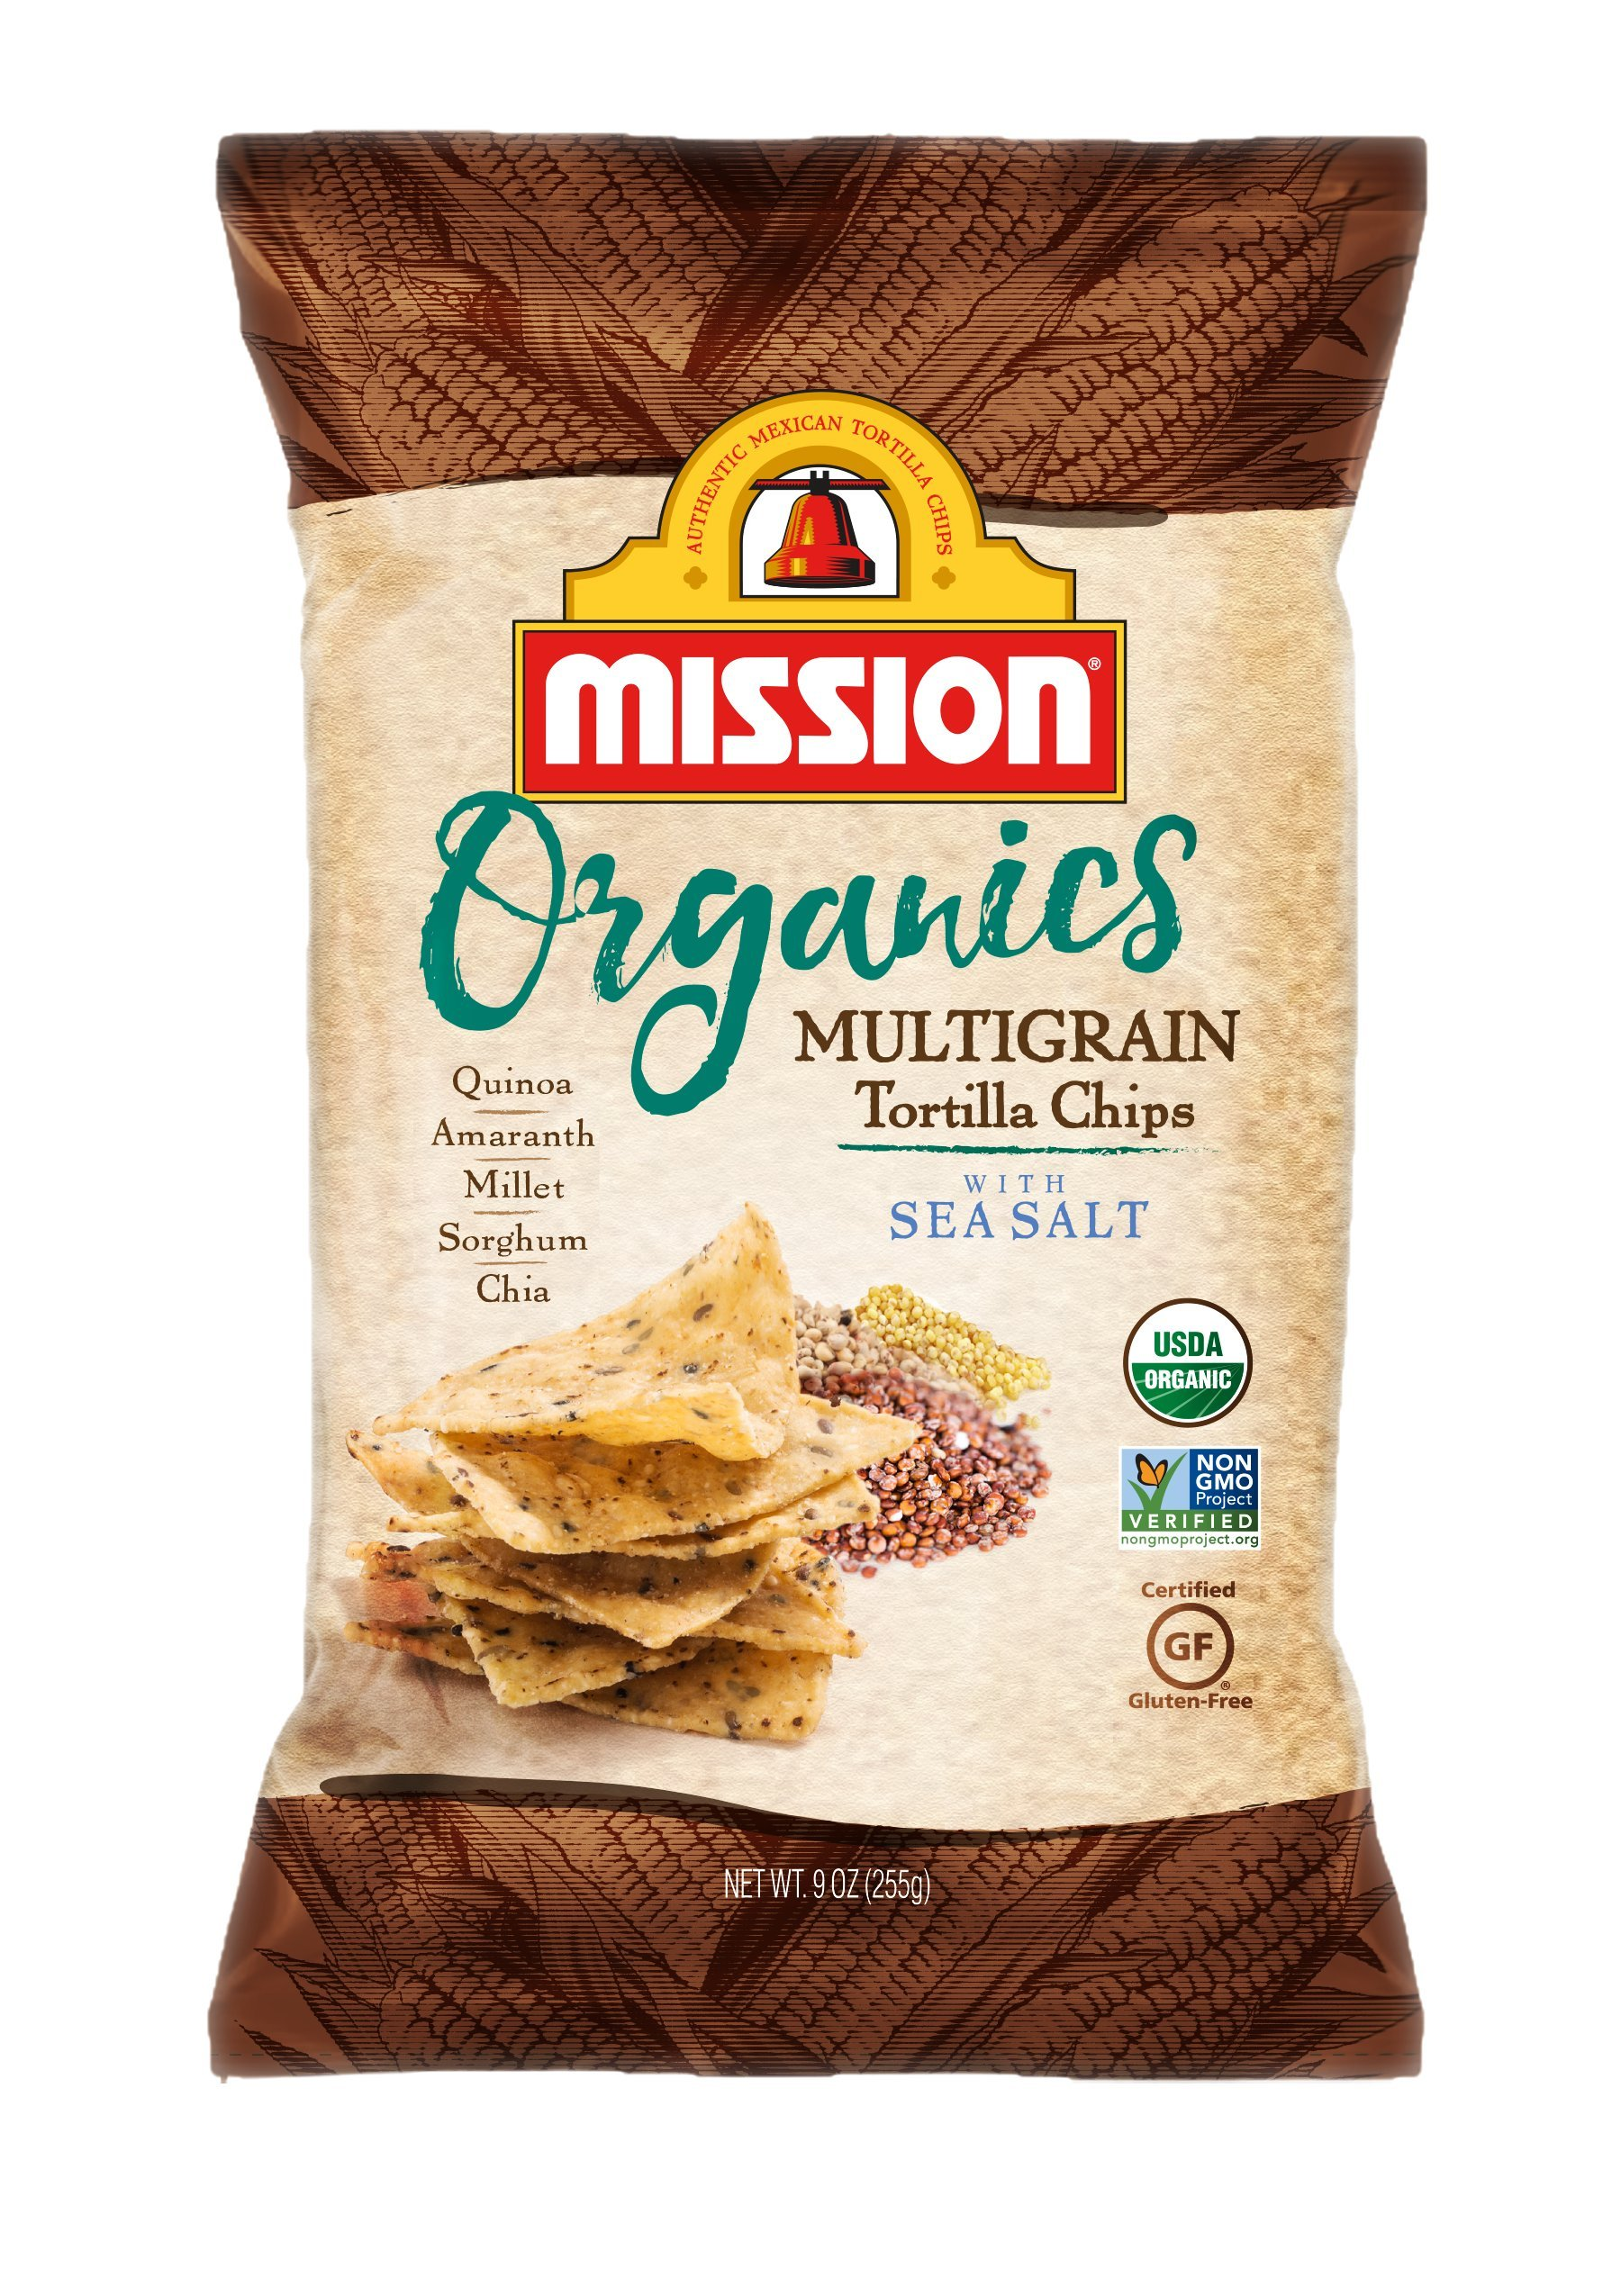 Mission Foods Organic Multigrain Tortilla Chips, 9 oz